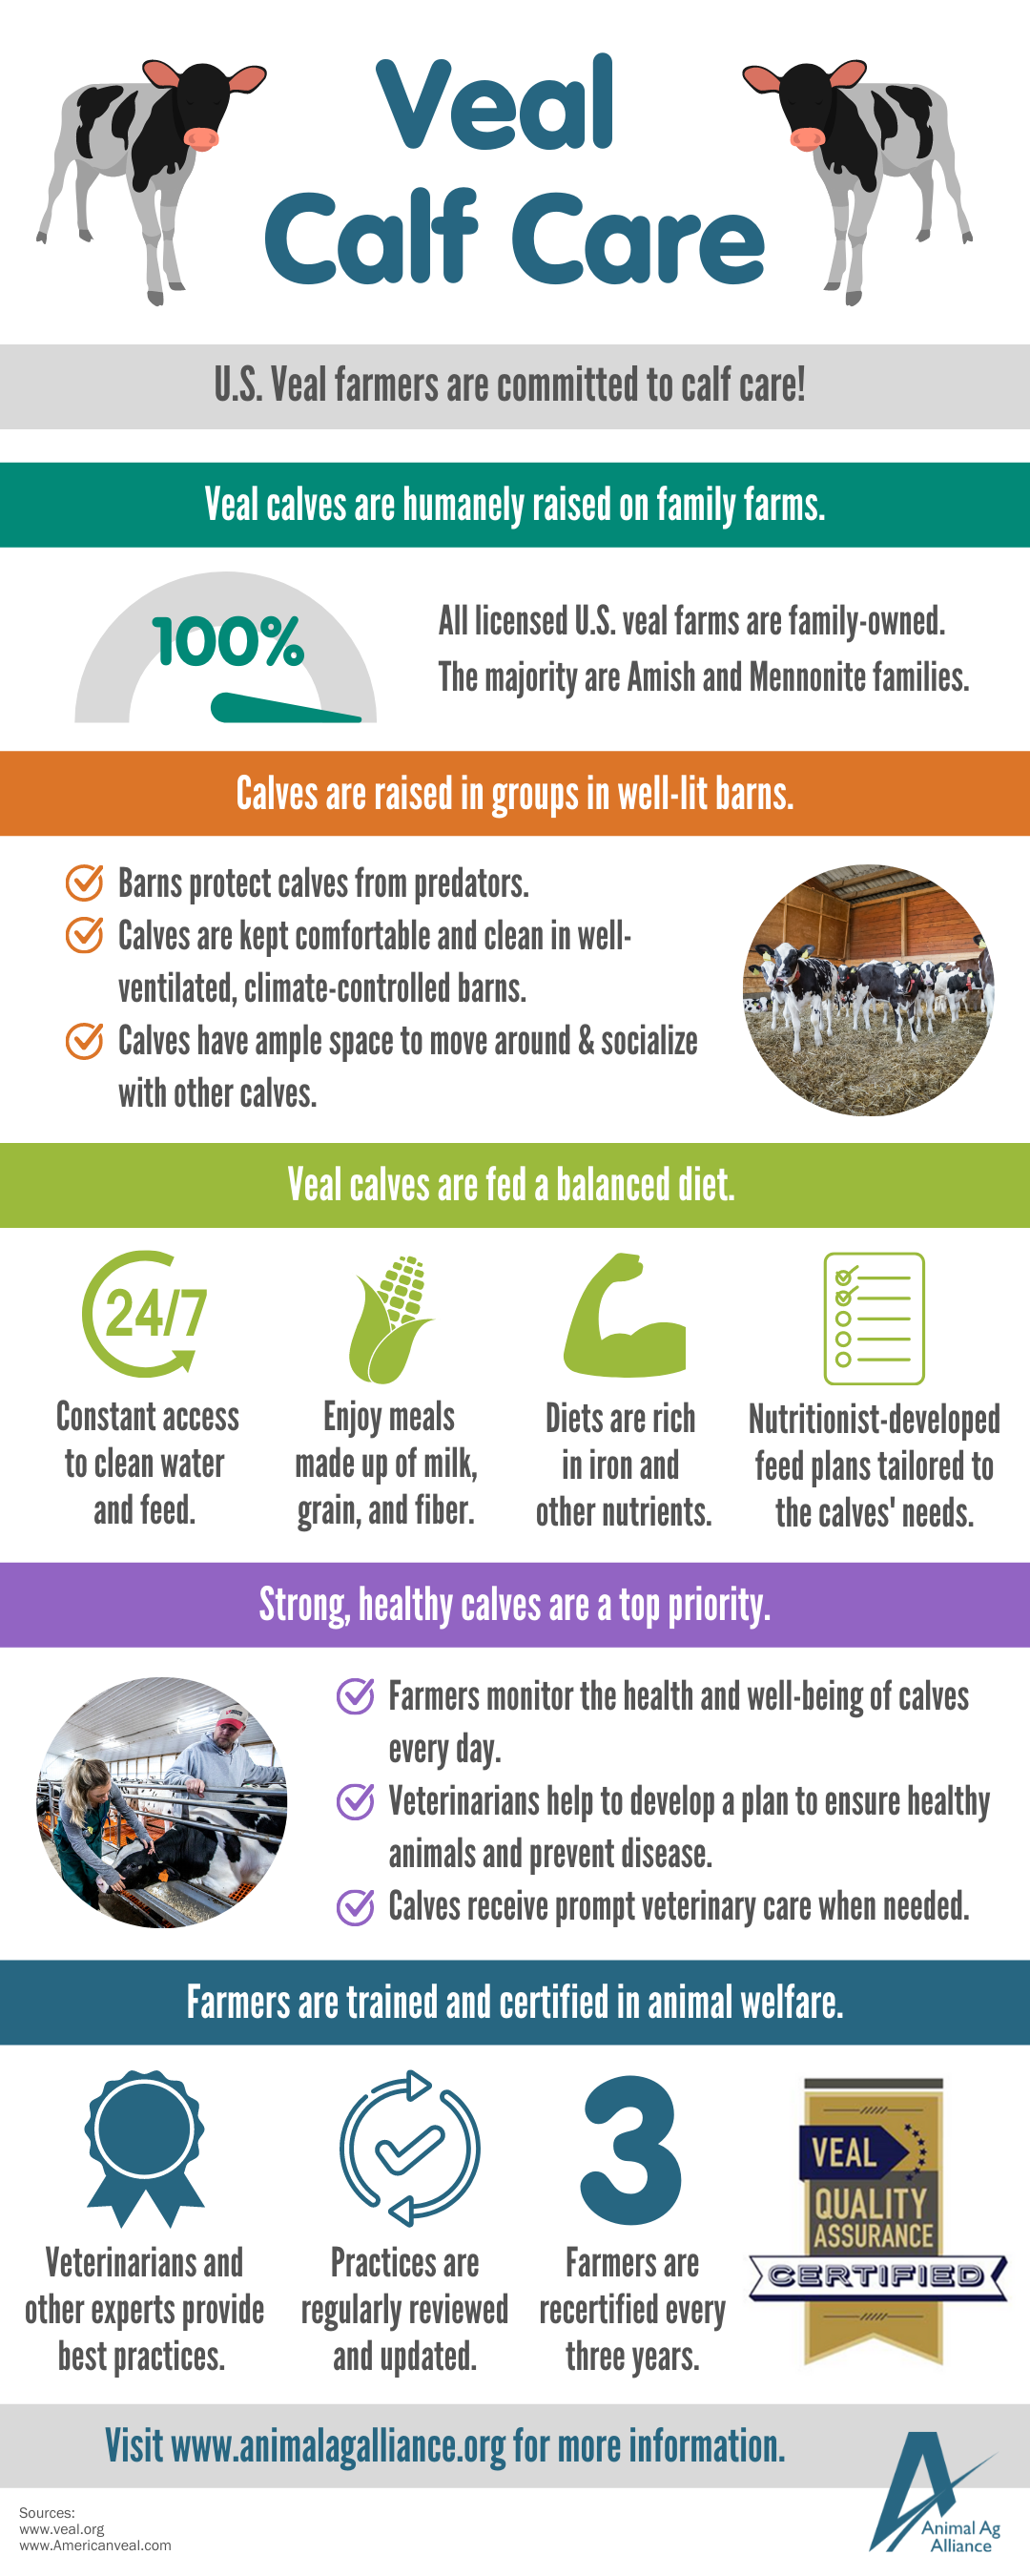 Veal calf care infographic